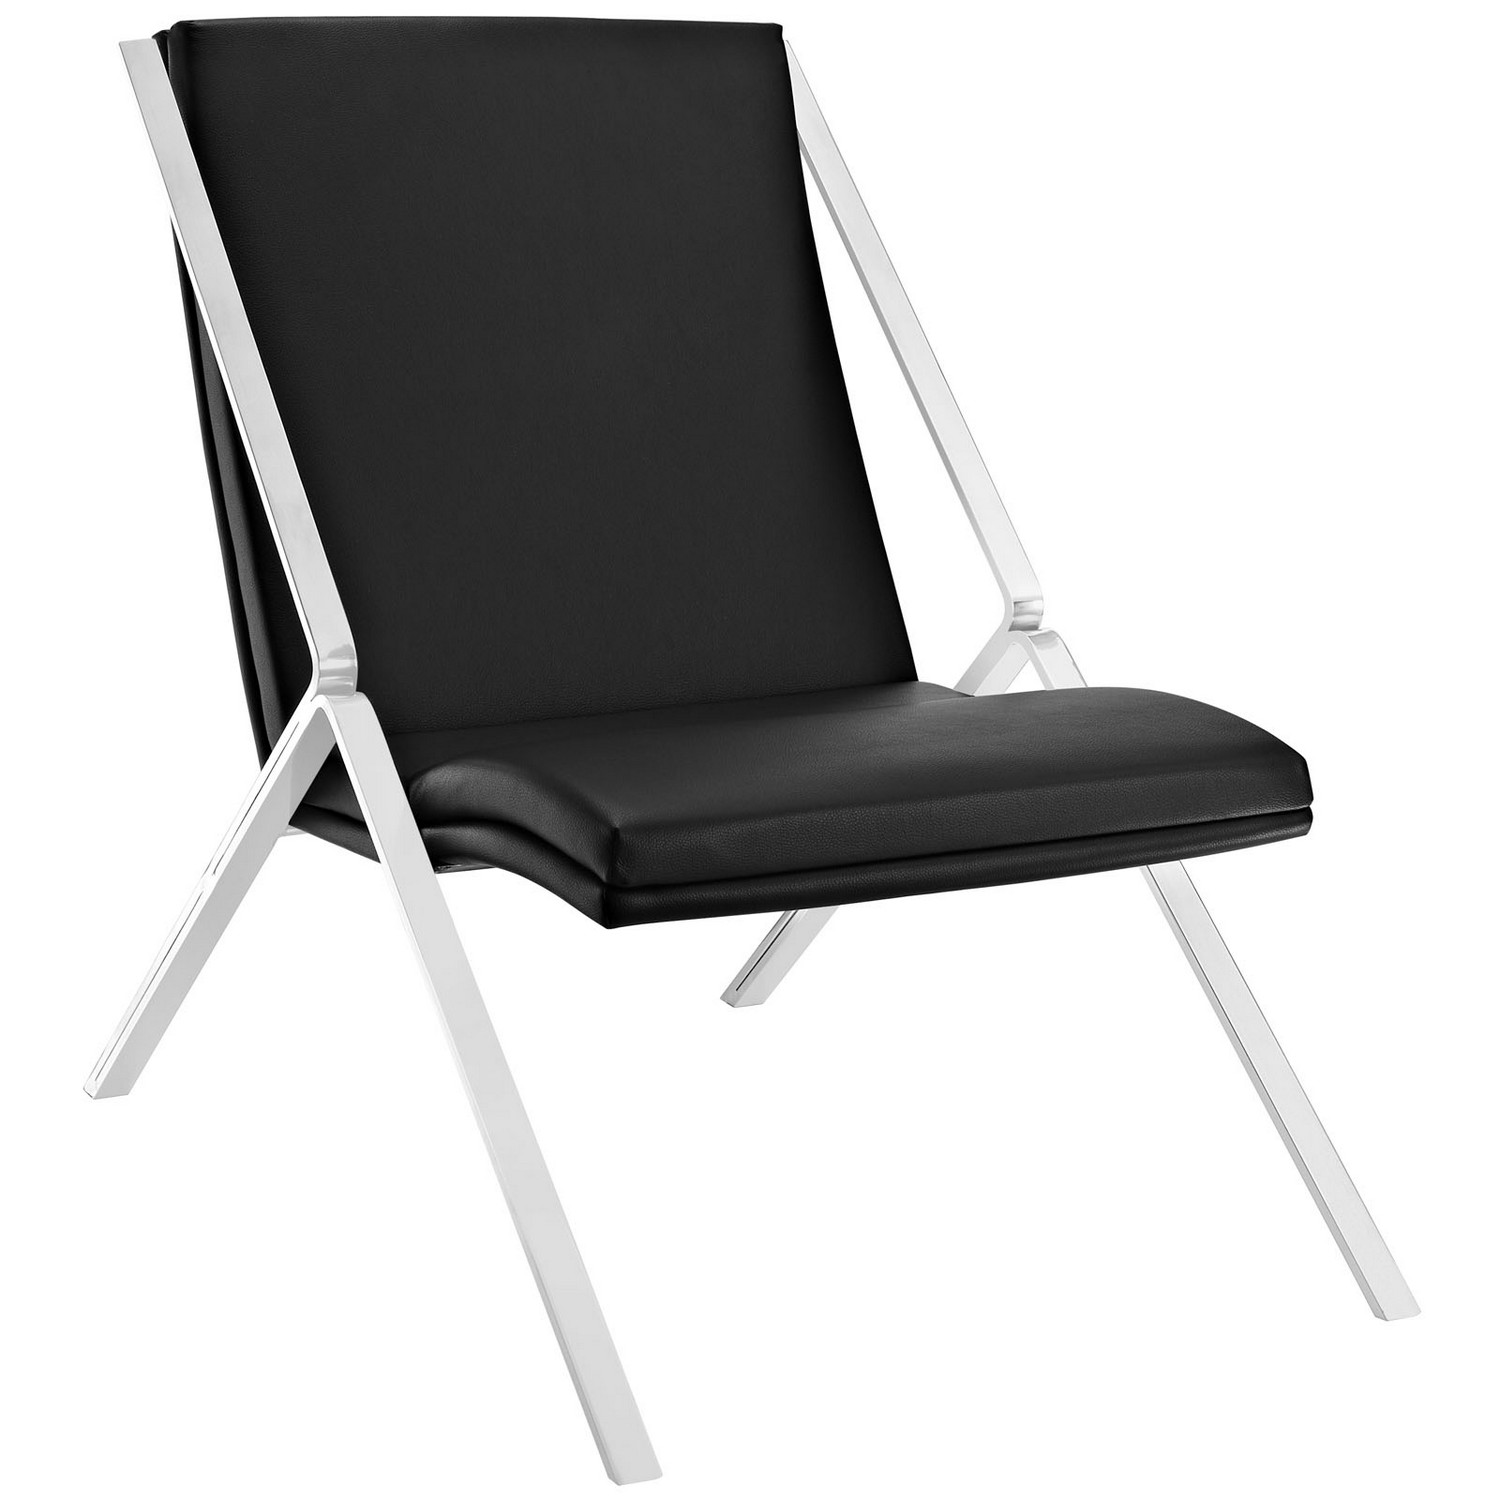 Modway Swing Vinyl Lounge Chair - Black